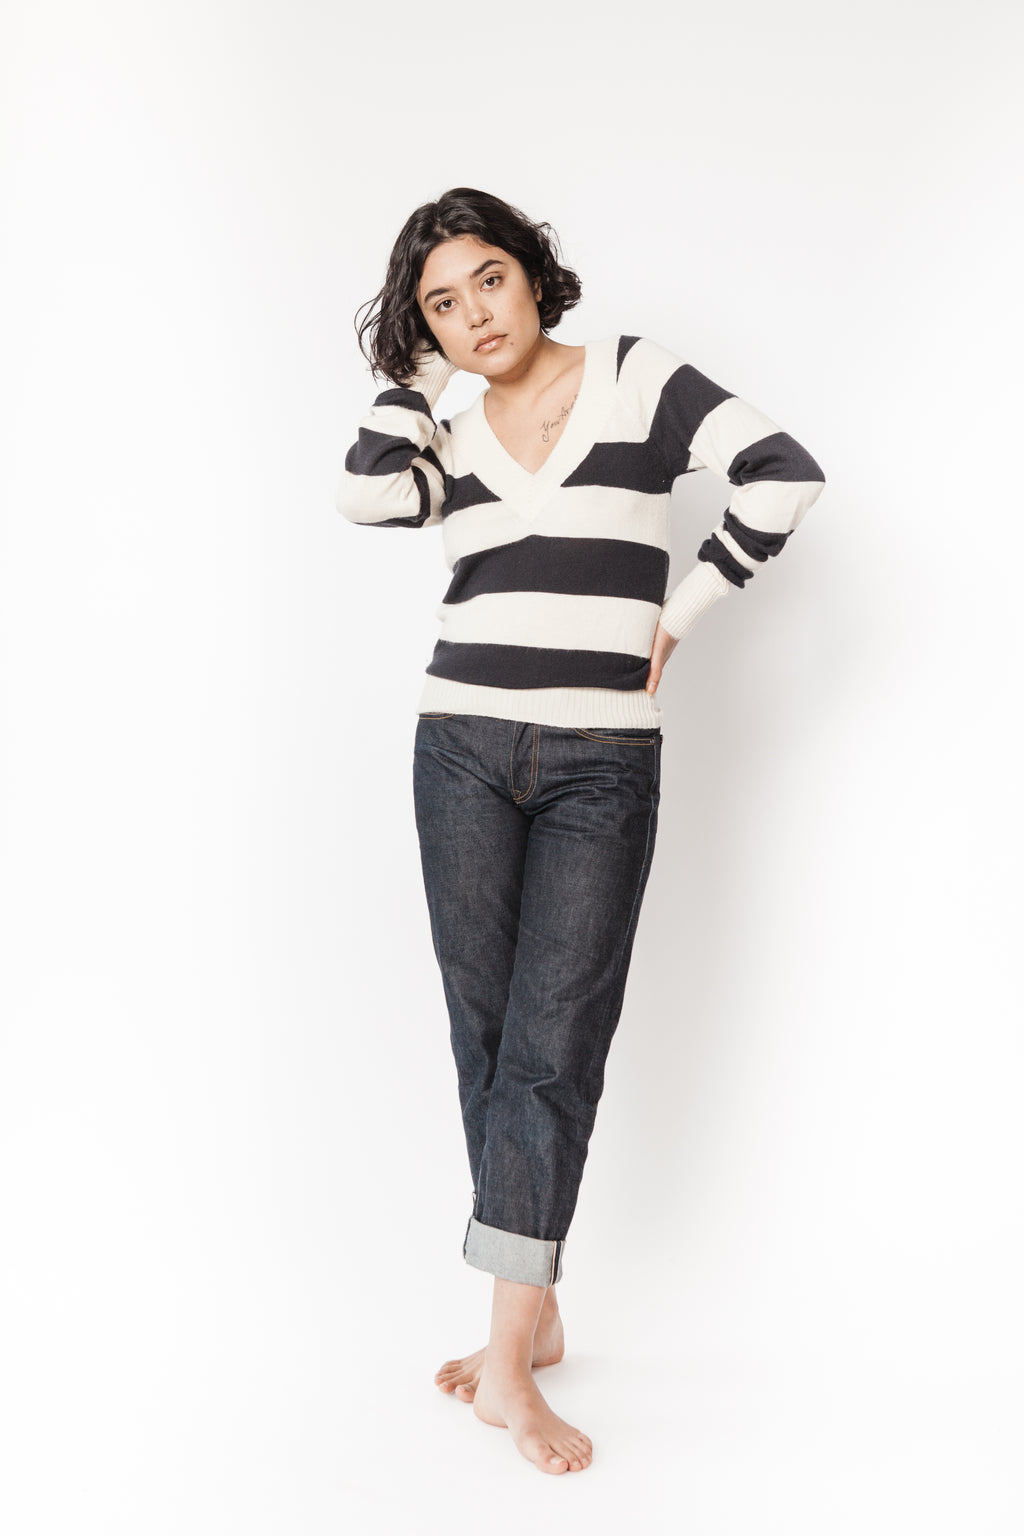 Jenni Kayne V-neck striped sweater